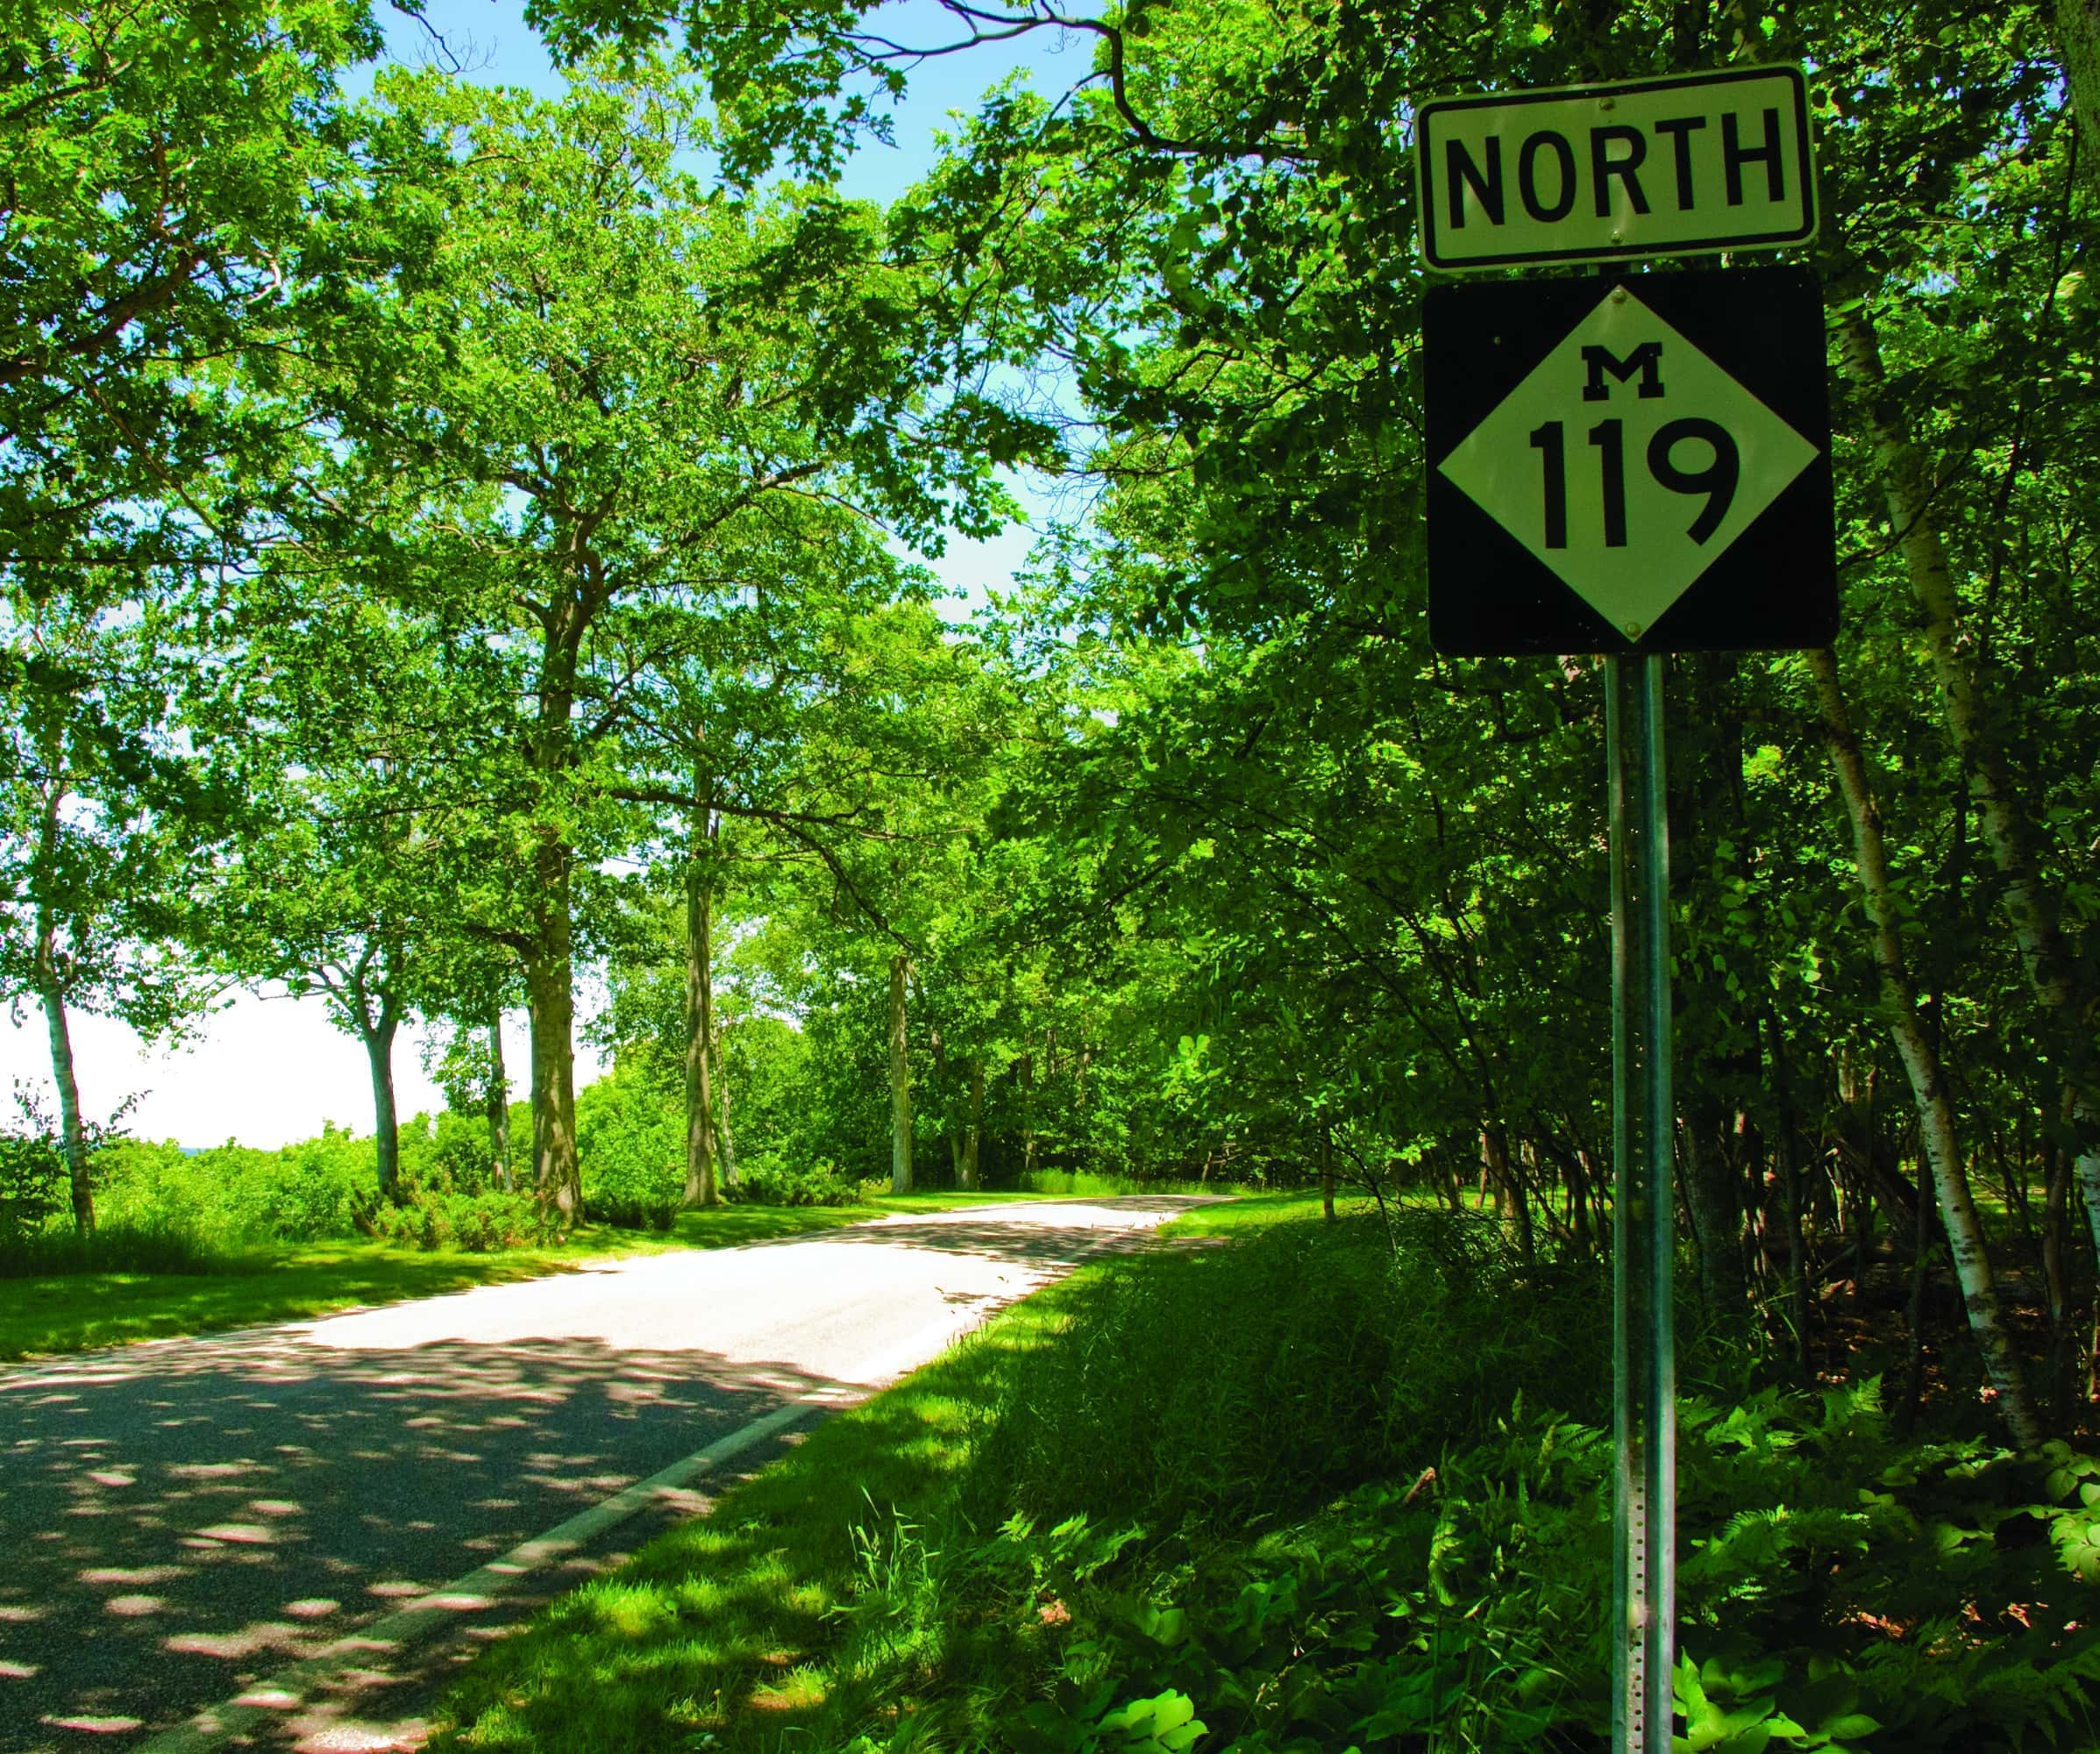 Plan Your Trip to M-119\'s Tunnel of Trees (Insider Tips!) - MyNorth.com